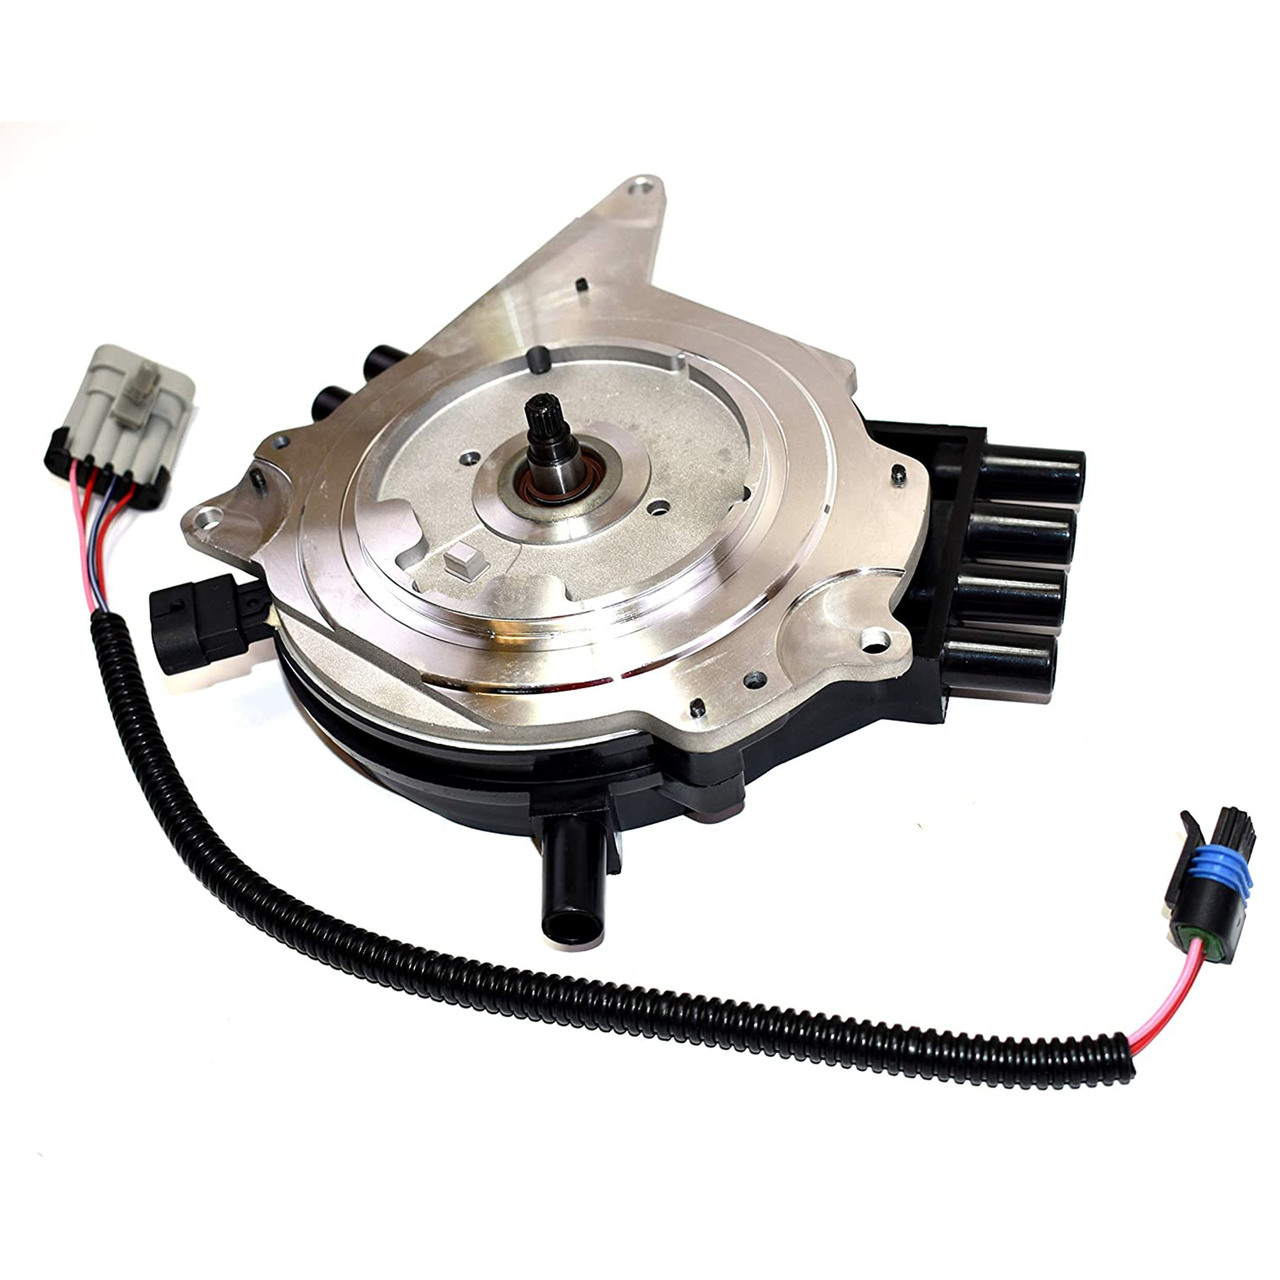 A-Team Performance Complete OptiSpark Spline Drive Distributor with Wiring Harness Compatible With Chevy GMC Chevrolet 92-94 LT1 V8 5.7L Black Cap